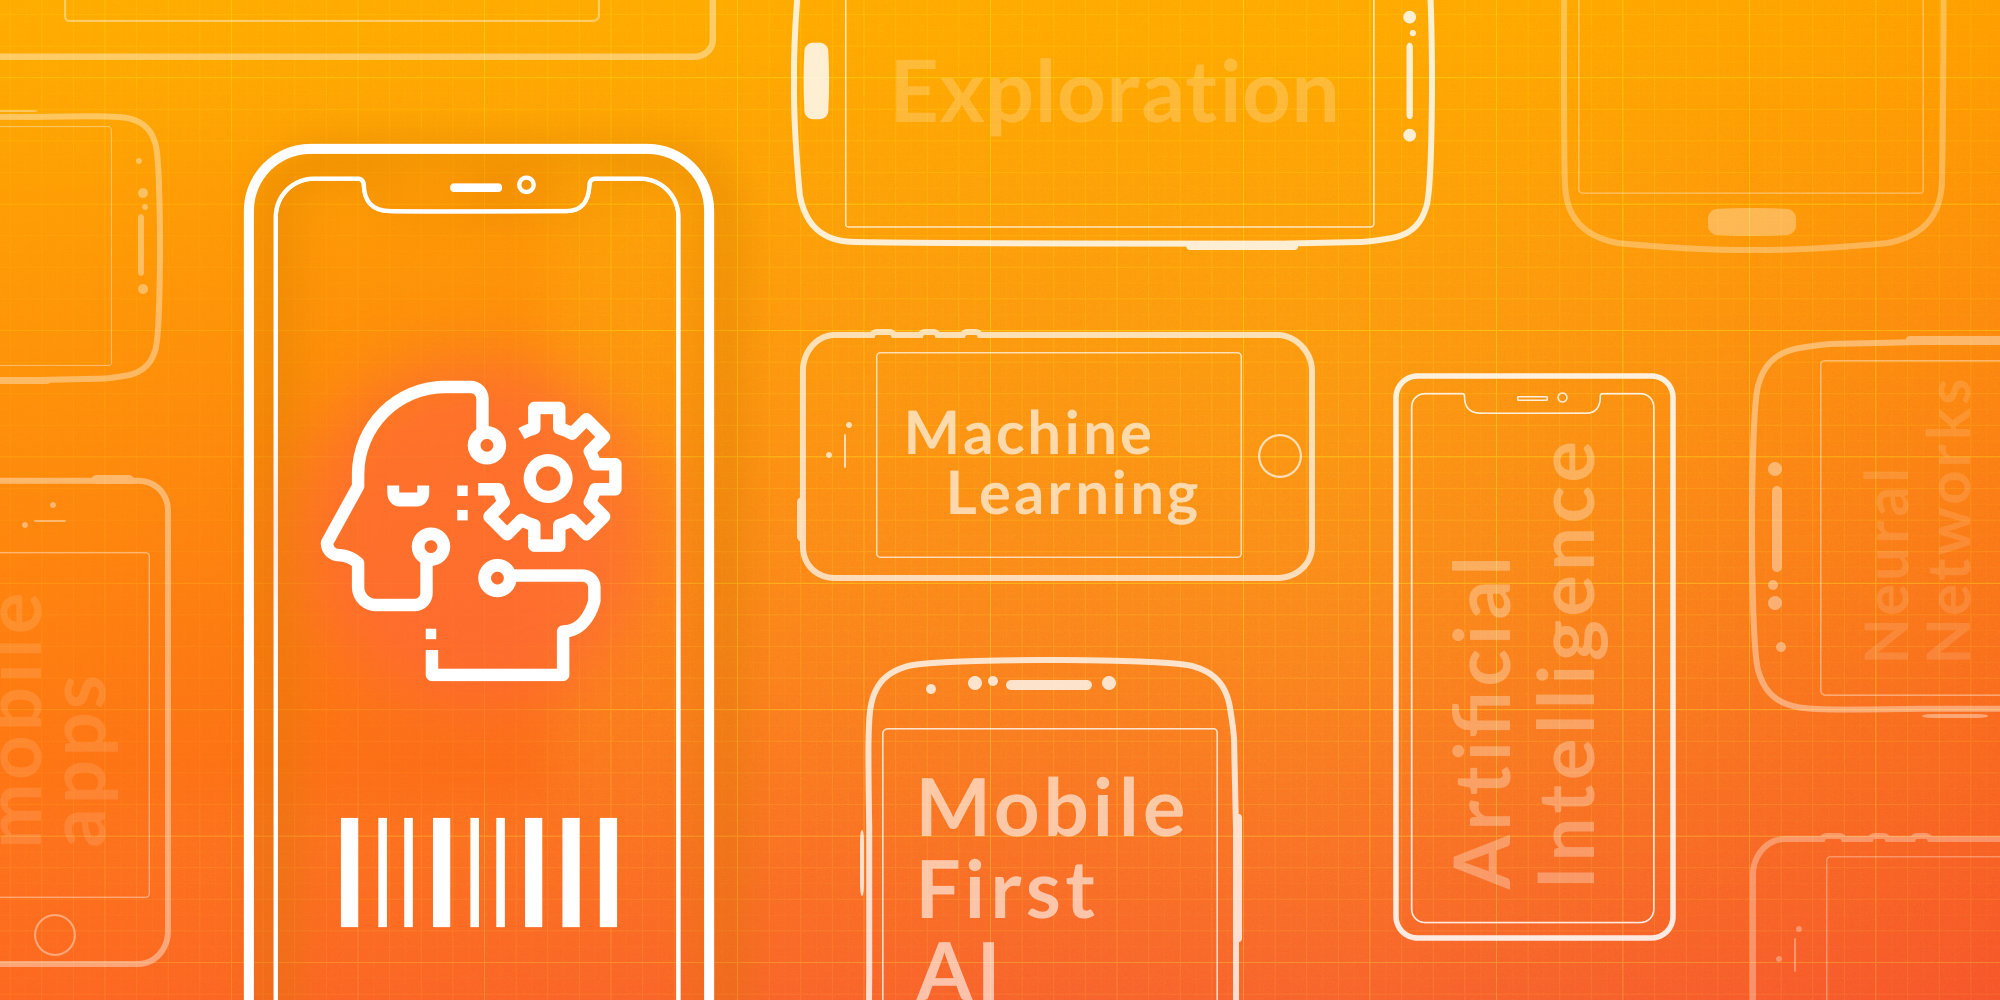 An exploration of mobile first AI